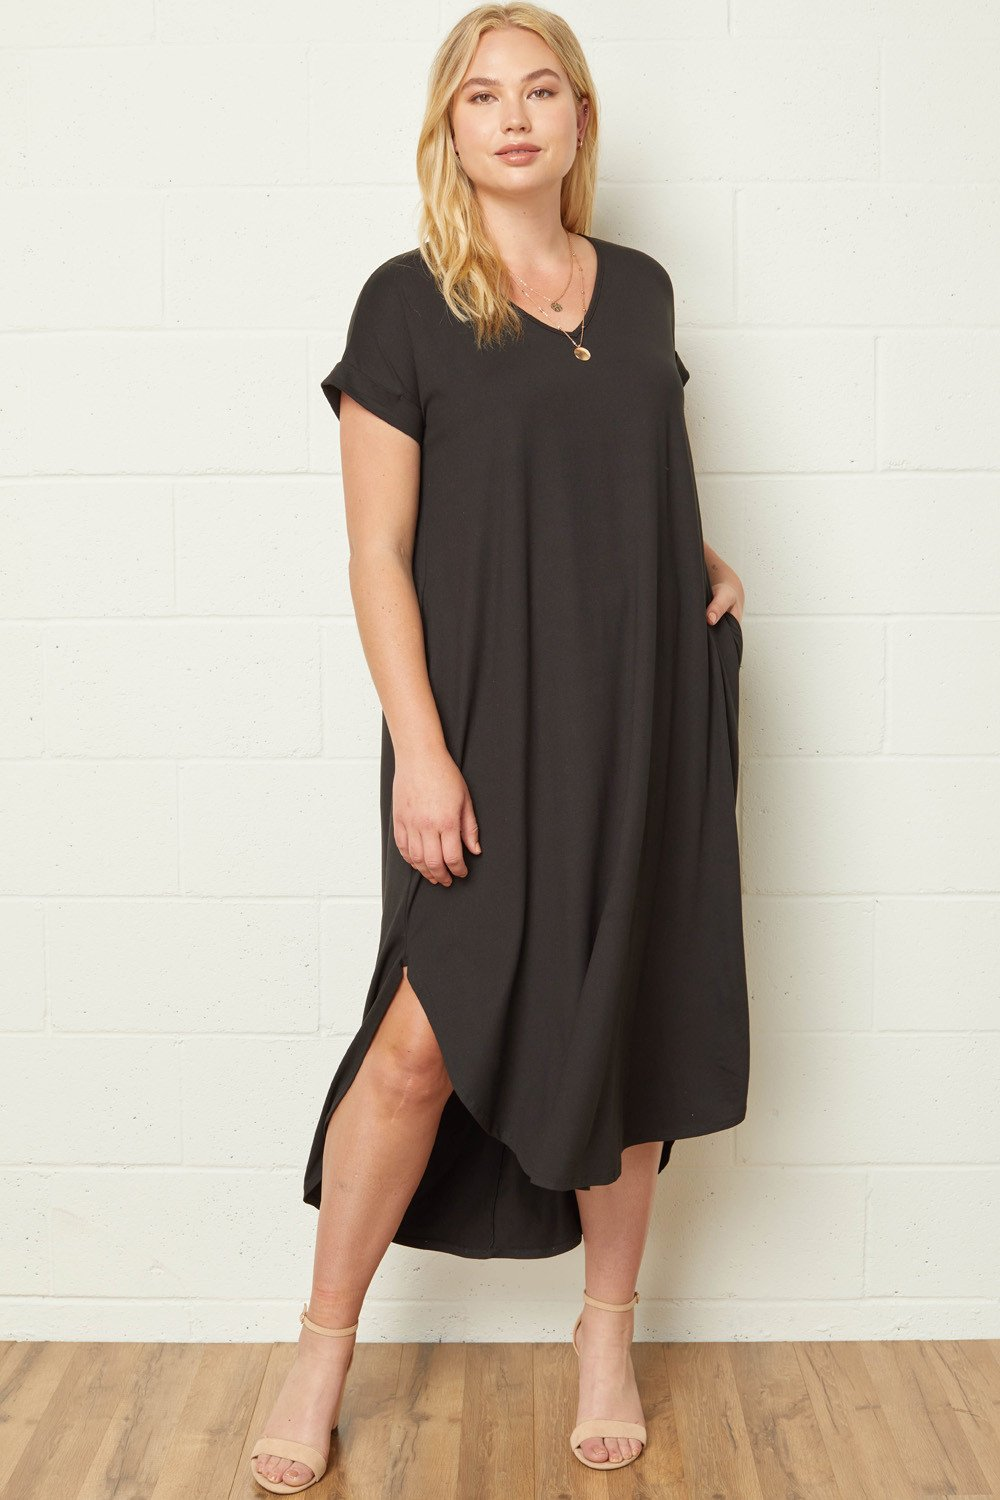 ENTRO INC Women's Dress Entro Plus Size V-Neck Maxi Dress with Sleeves and Side Pockets || David's Clothing